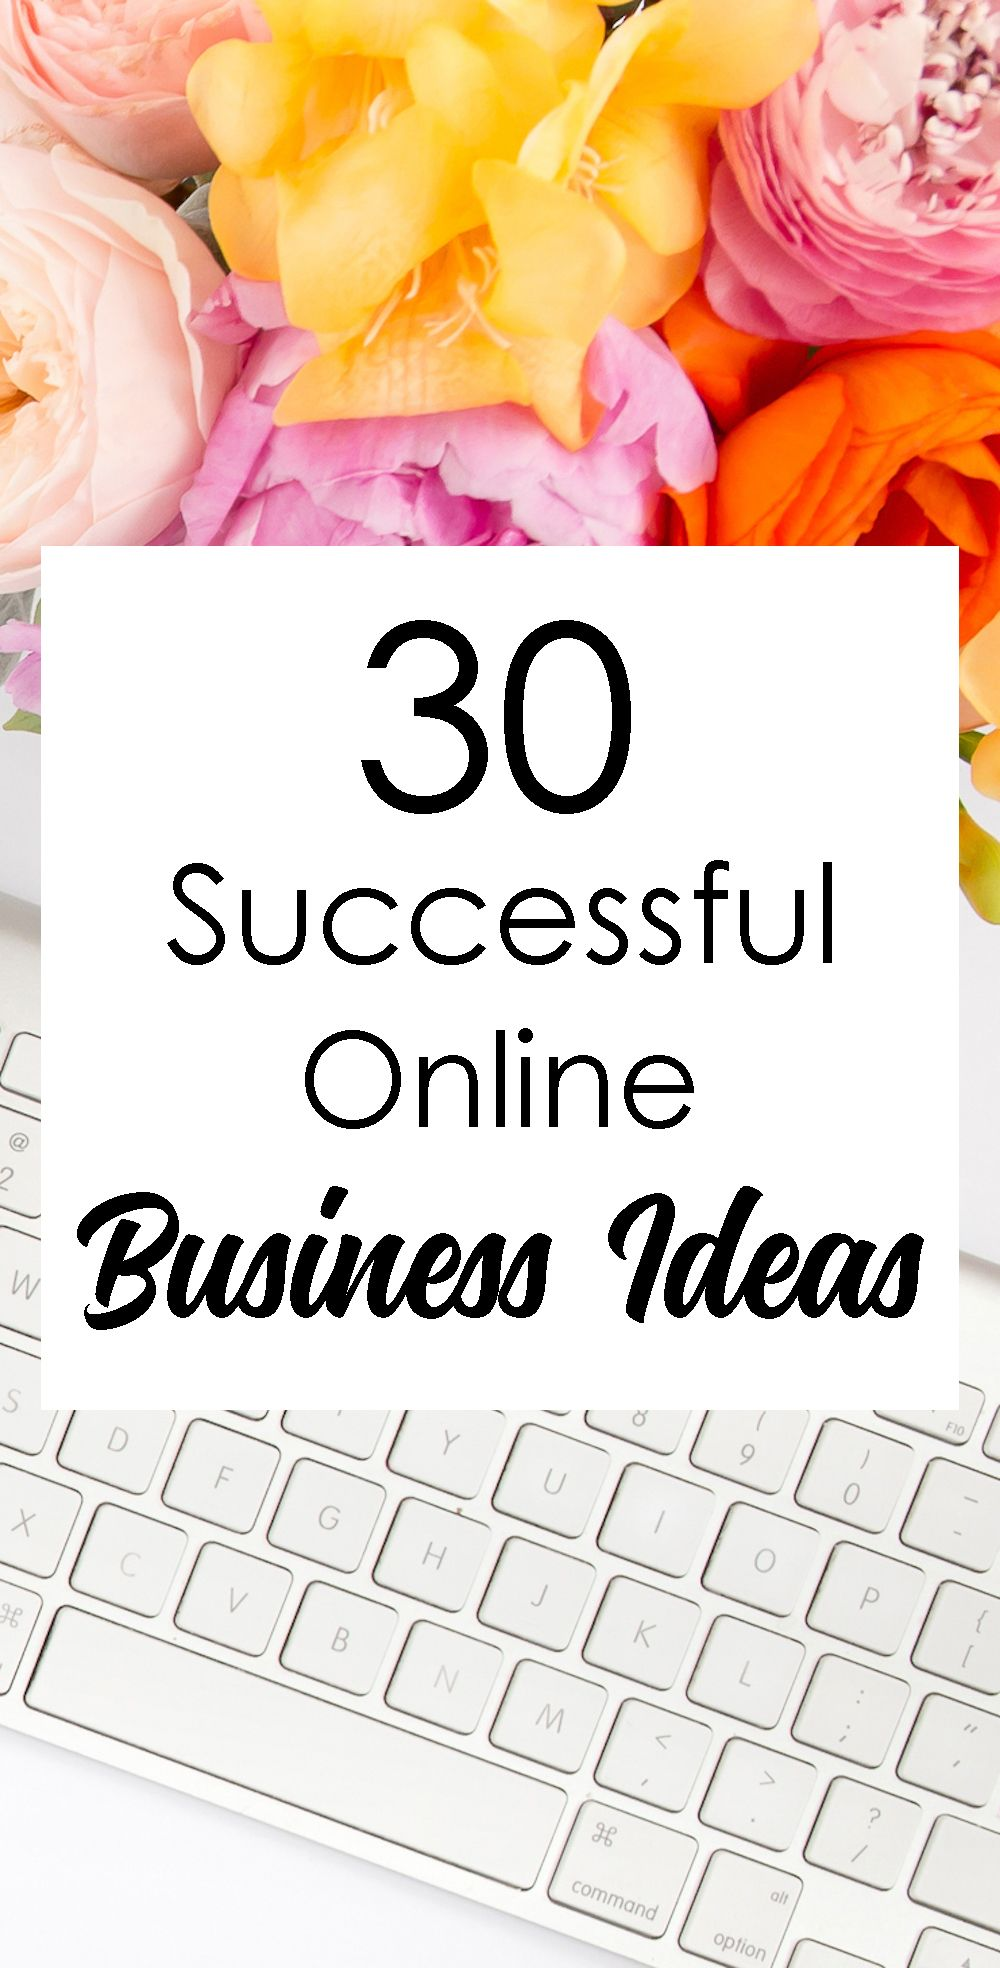 30 Successful Online Business Ideas | Learn how to start an online ...